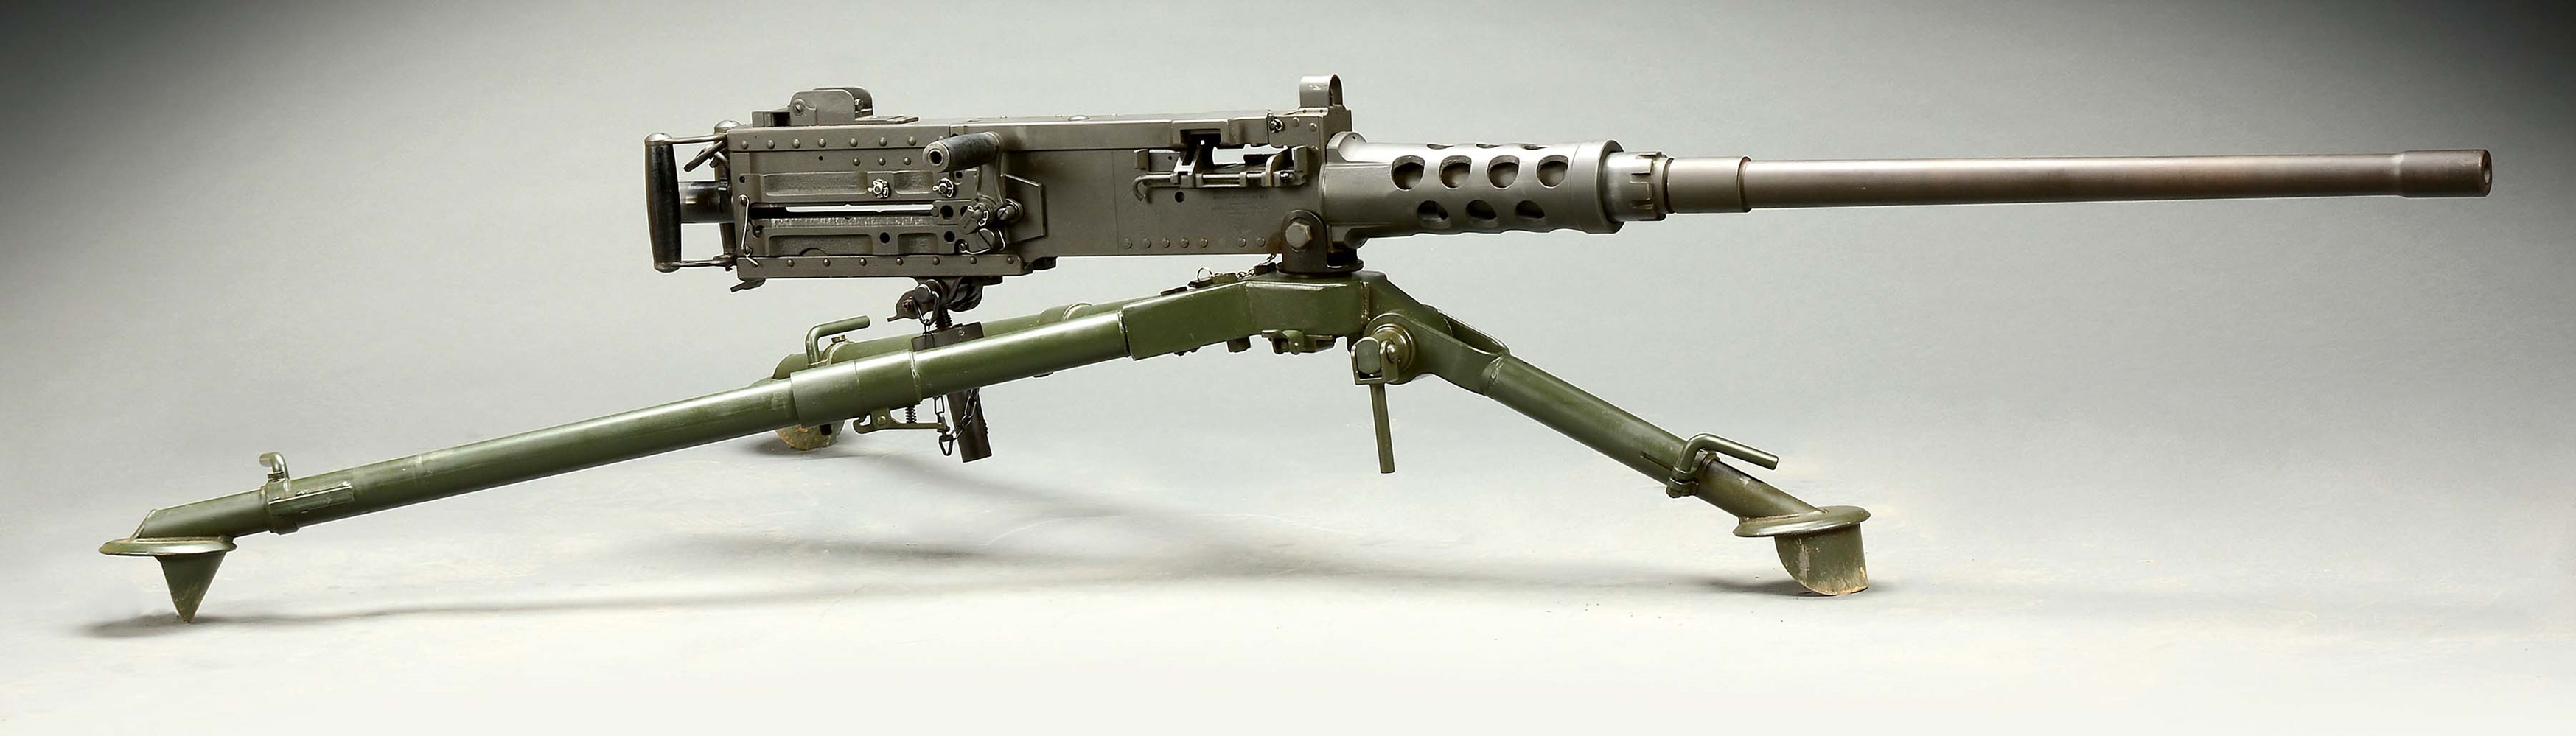 (N) HIGHLY SOUGHT RAMO SIDEPLATE BROWNING M2 .50 CAL MACHINE GUN (FULLY TRANSFERABLE)